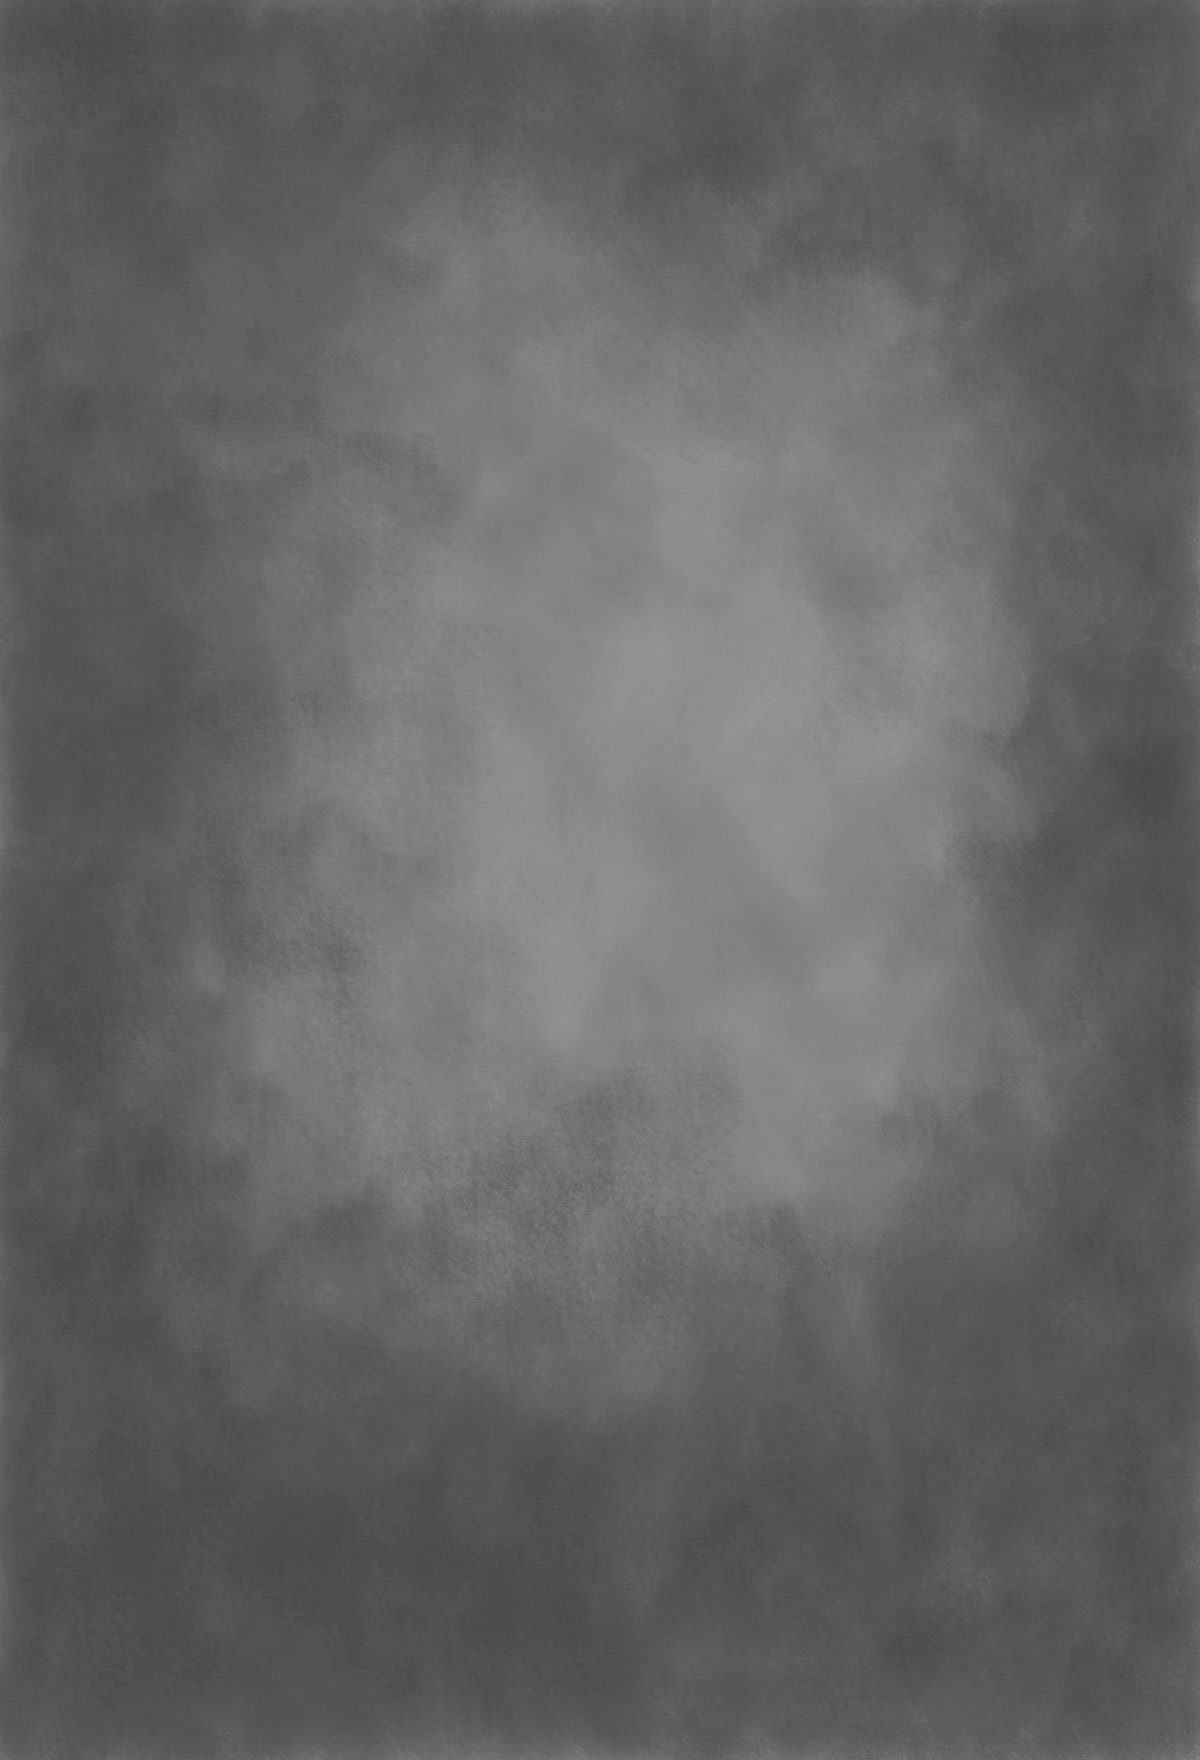 Kate 10x10ft Oil Painting Printed Old Master Dark Grey Background Portrait Photography Abstract Texture Backdrop Photography Studio Props for Photographer Kids Children Adults